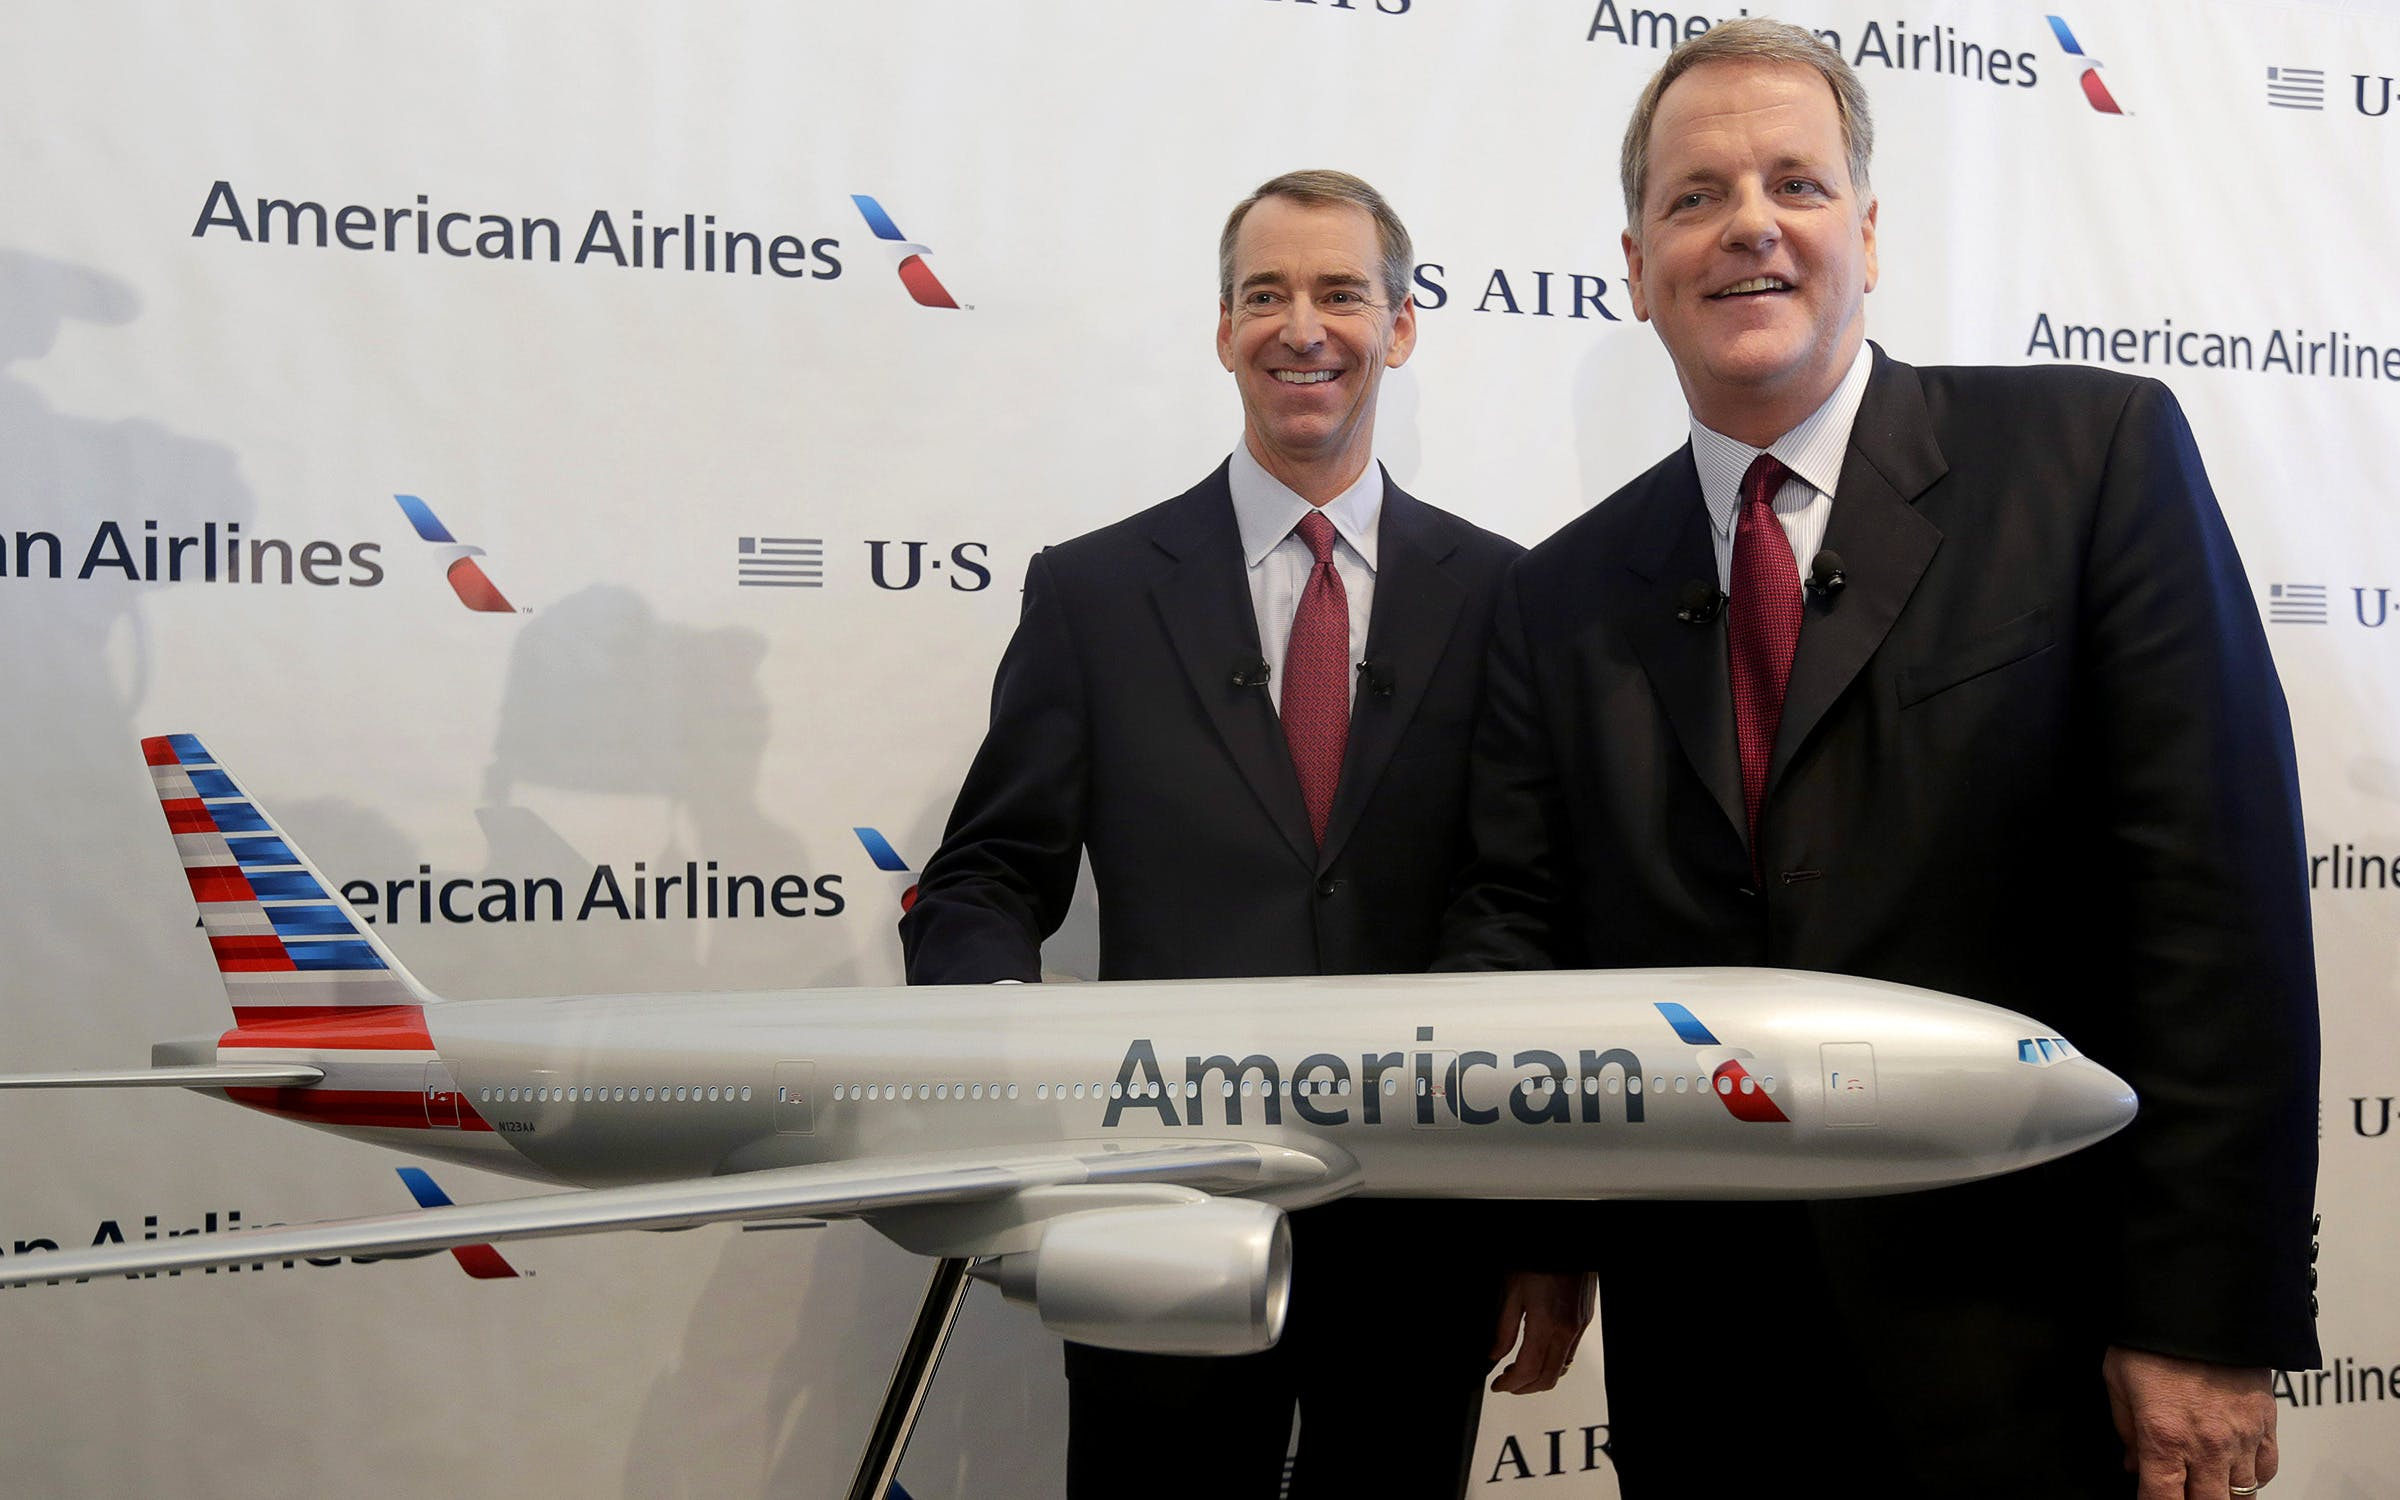 U.S. Airways CEO Doug Parker, right, and American Airlines CEO Tom Horton pose after a news conference at DFW International Airport Thursday, Feb. 14, 2013, in Grapevine, Texas. The two airlines will merge forming the world's largest airlines.